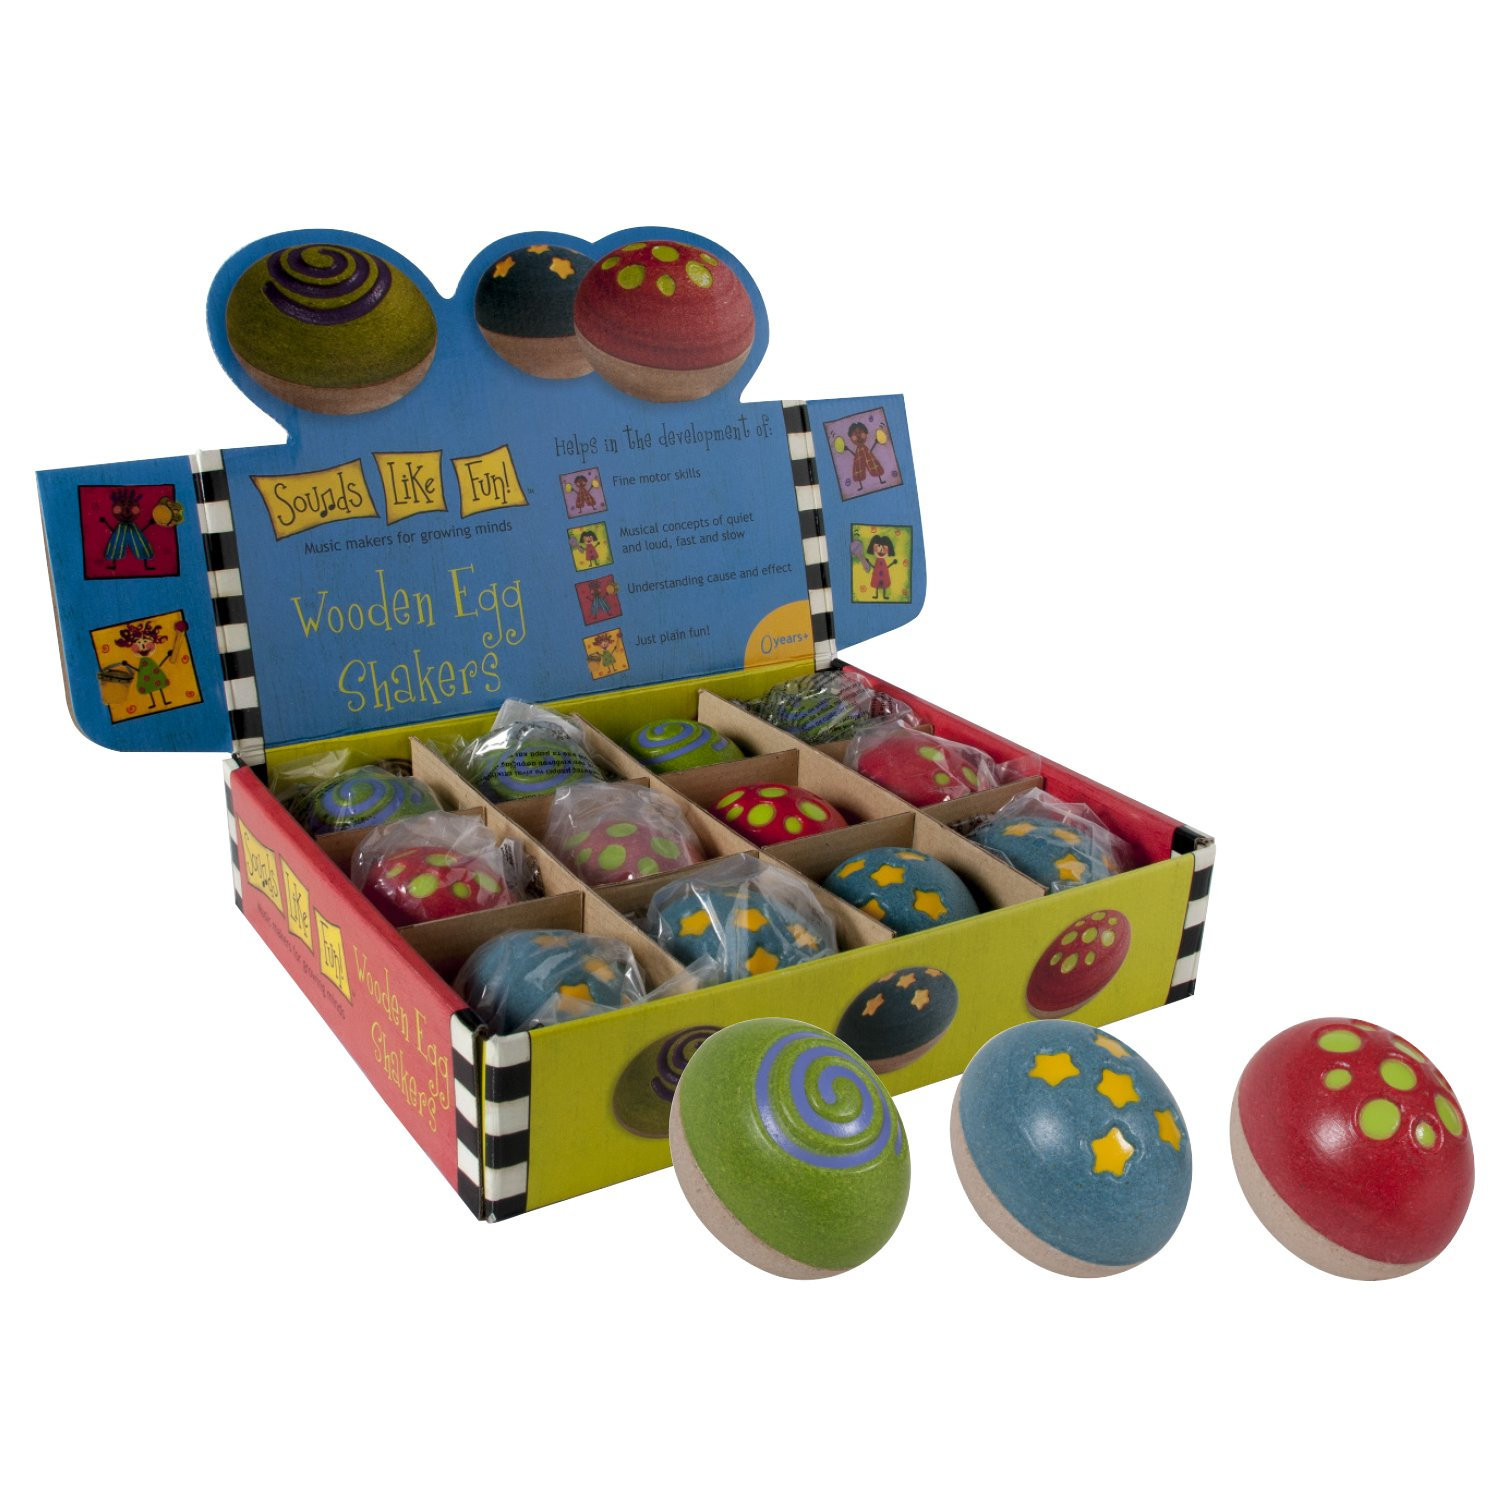 Sounds Like Fun Wooden Egg Shakers (Set of 12; Age 0+) by Sounds Like Fun